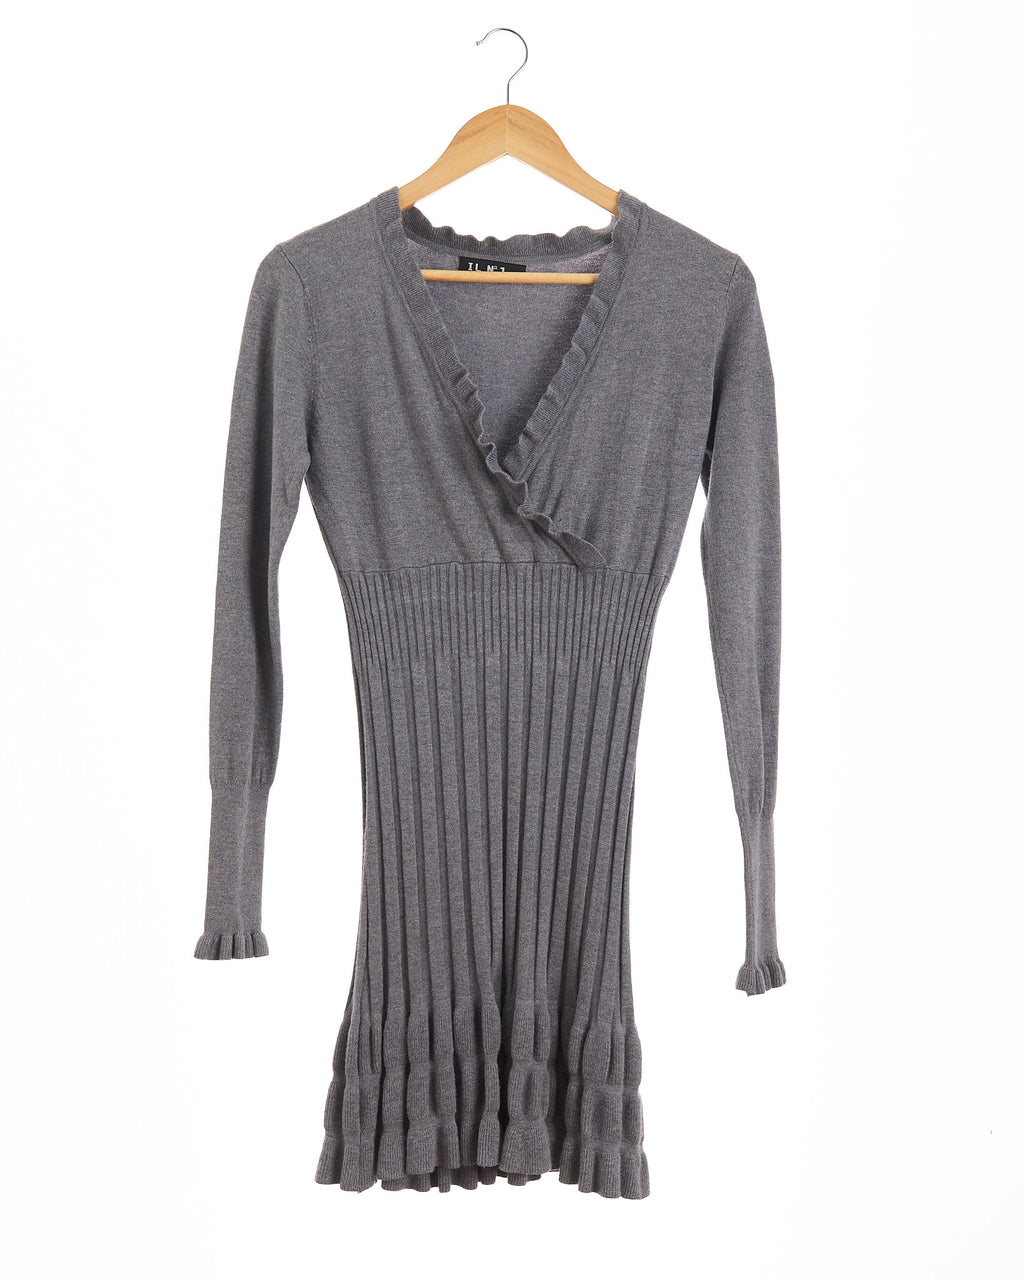 Dove Grey Ruffled Cashmere Knit Dress